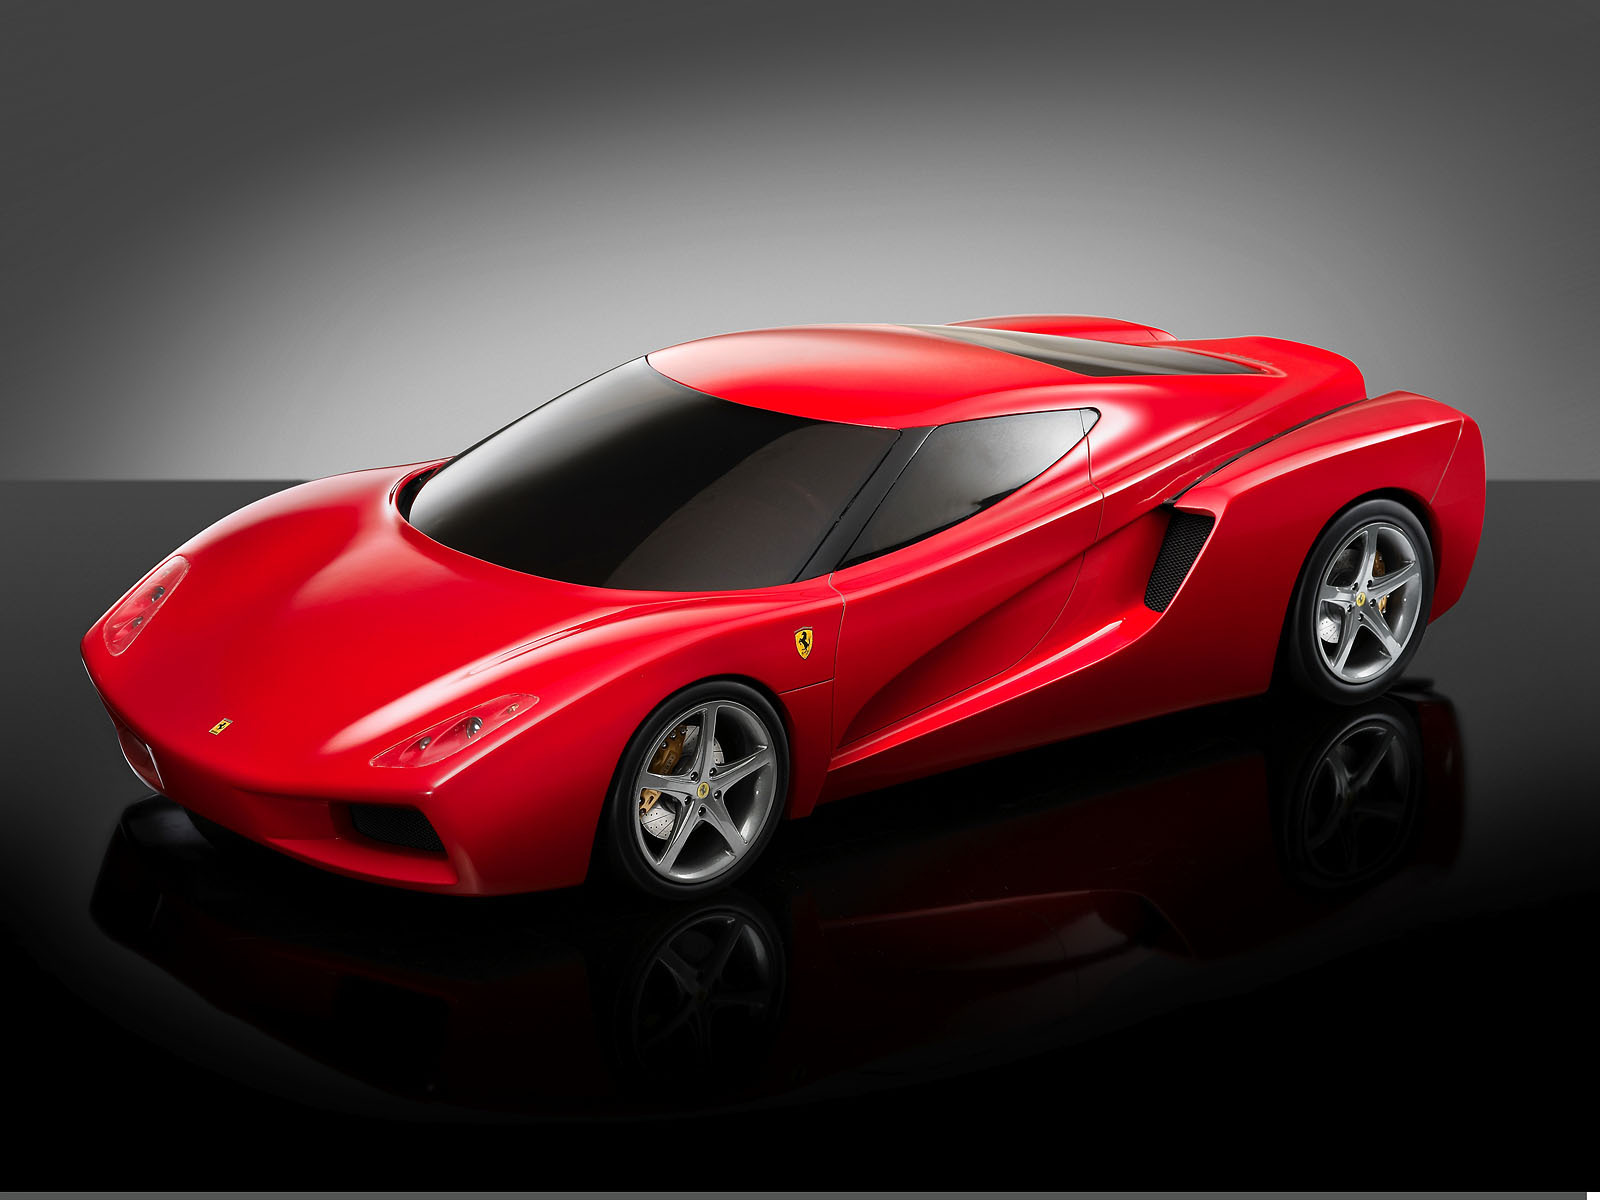 New Car Collections: Ferrari Pictures And Wallpapers